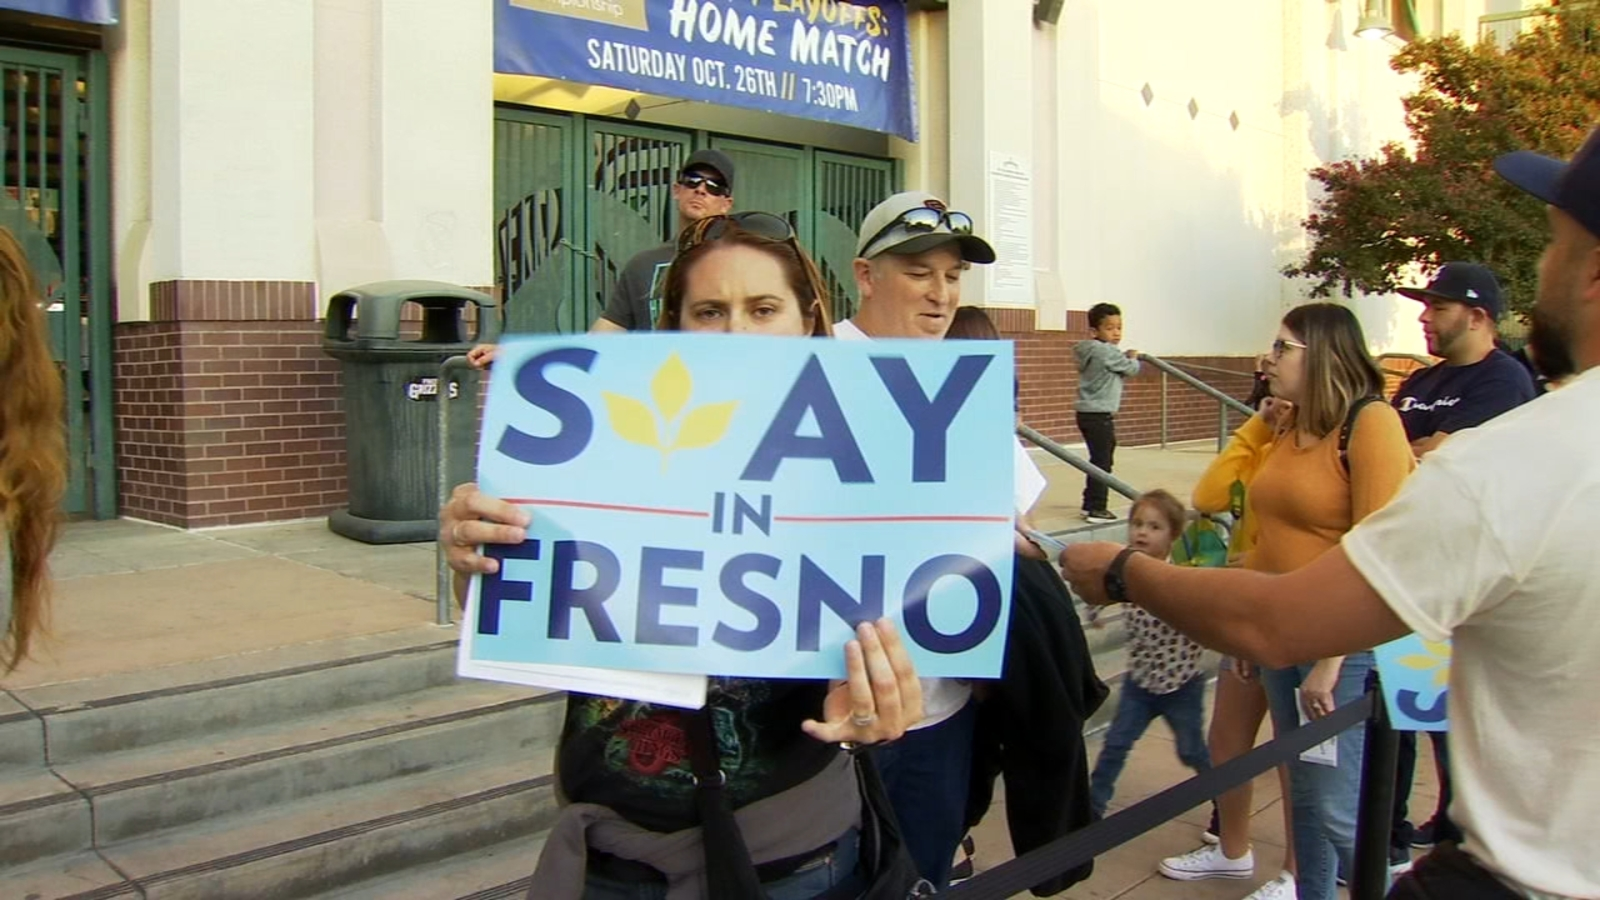 Fans react to uncertain future for Fresno FC Foxes